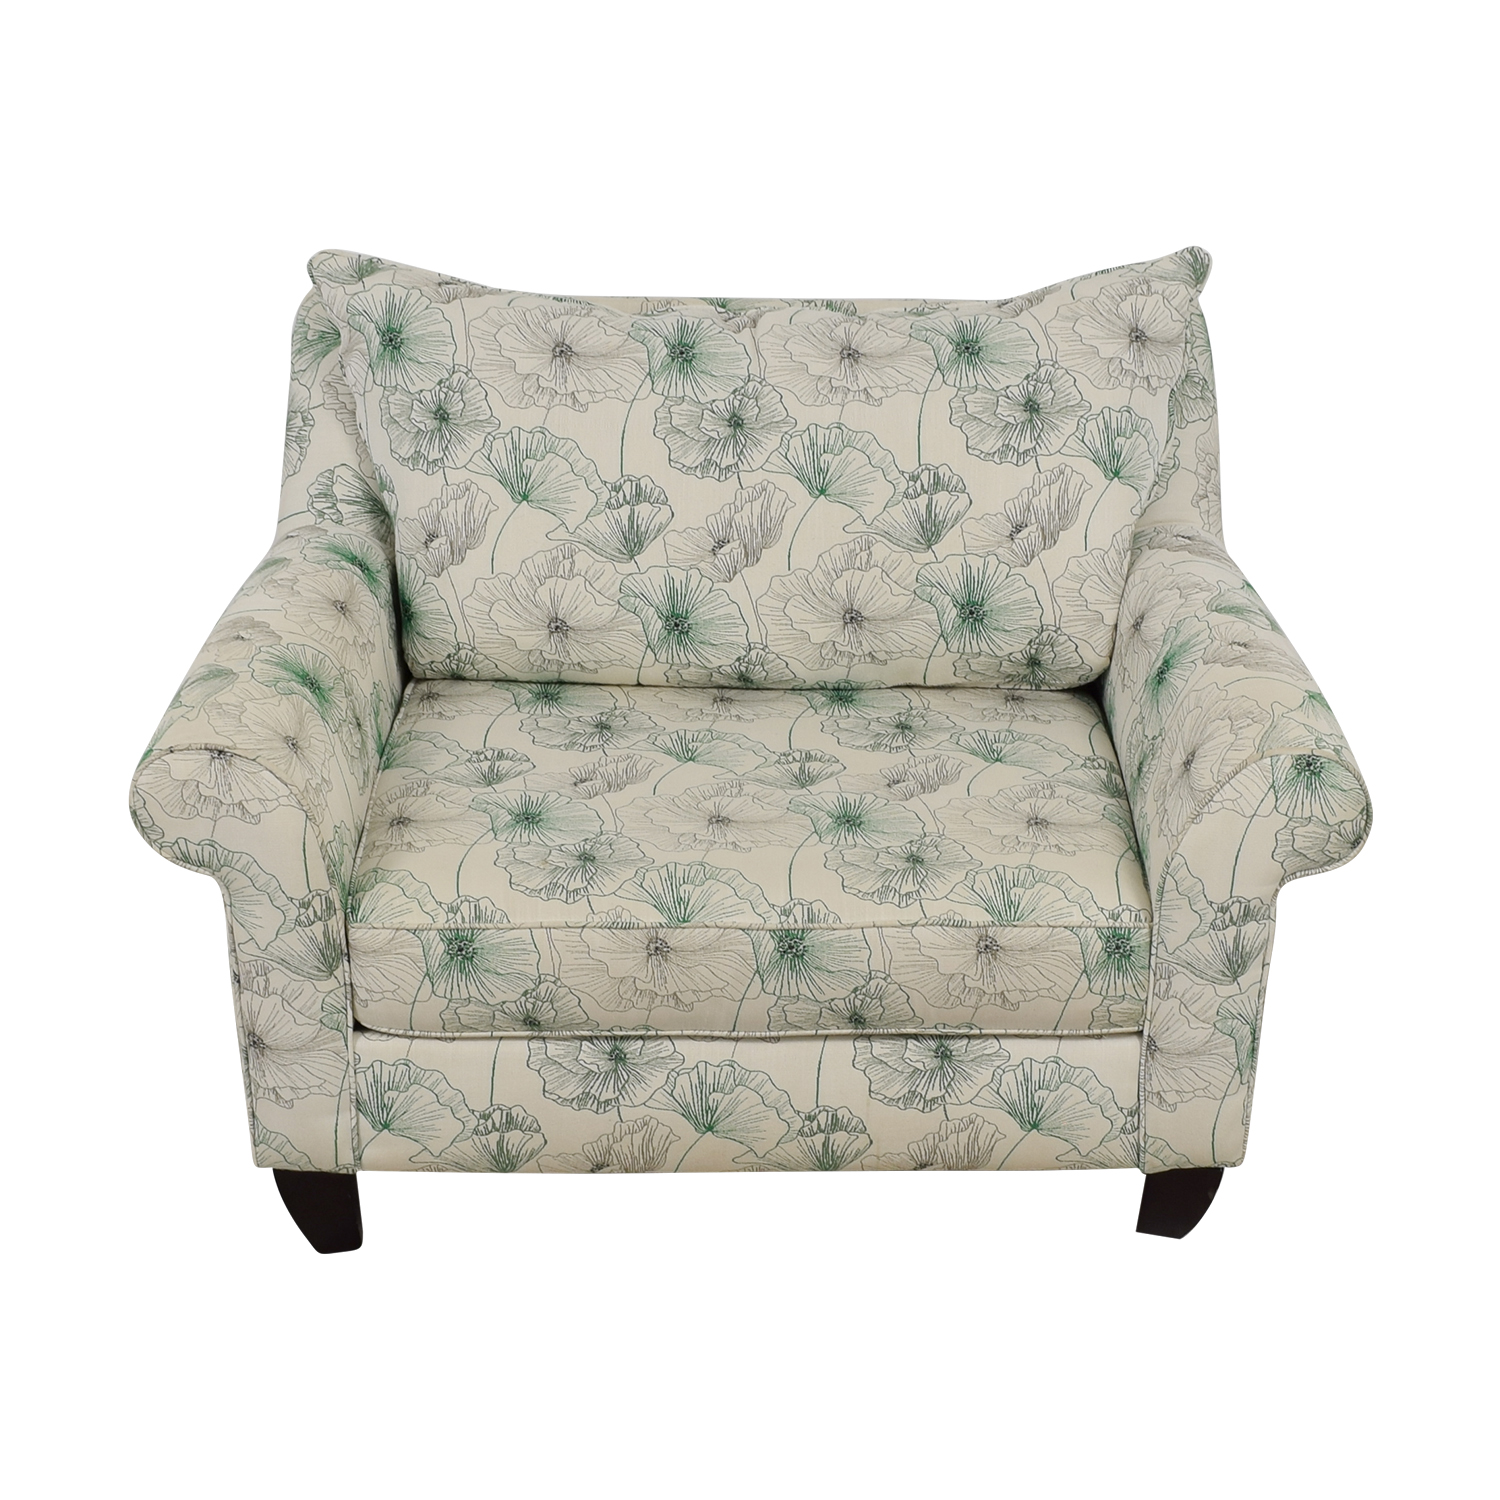 Peachy 74 Off American Signature American Signature White And Green Floral Loveseat Sofas Short Links Chair Design For Home Short Linksinfo